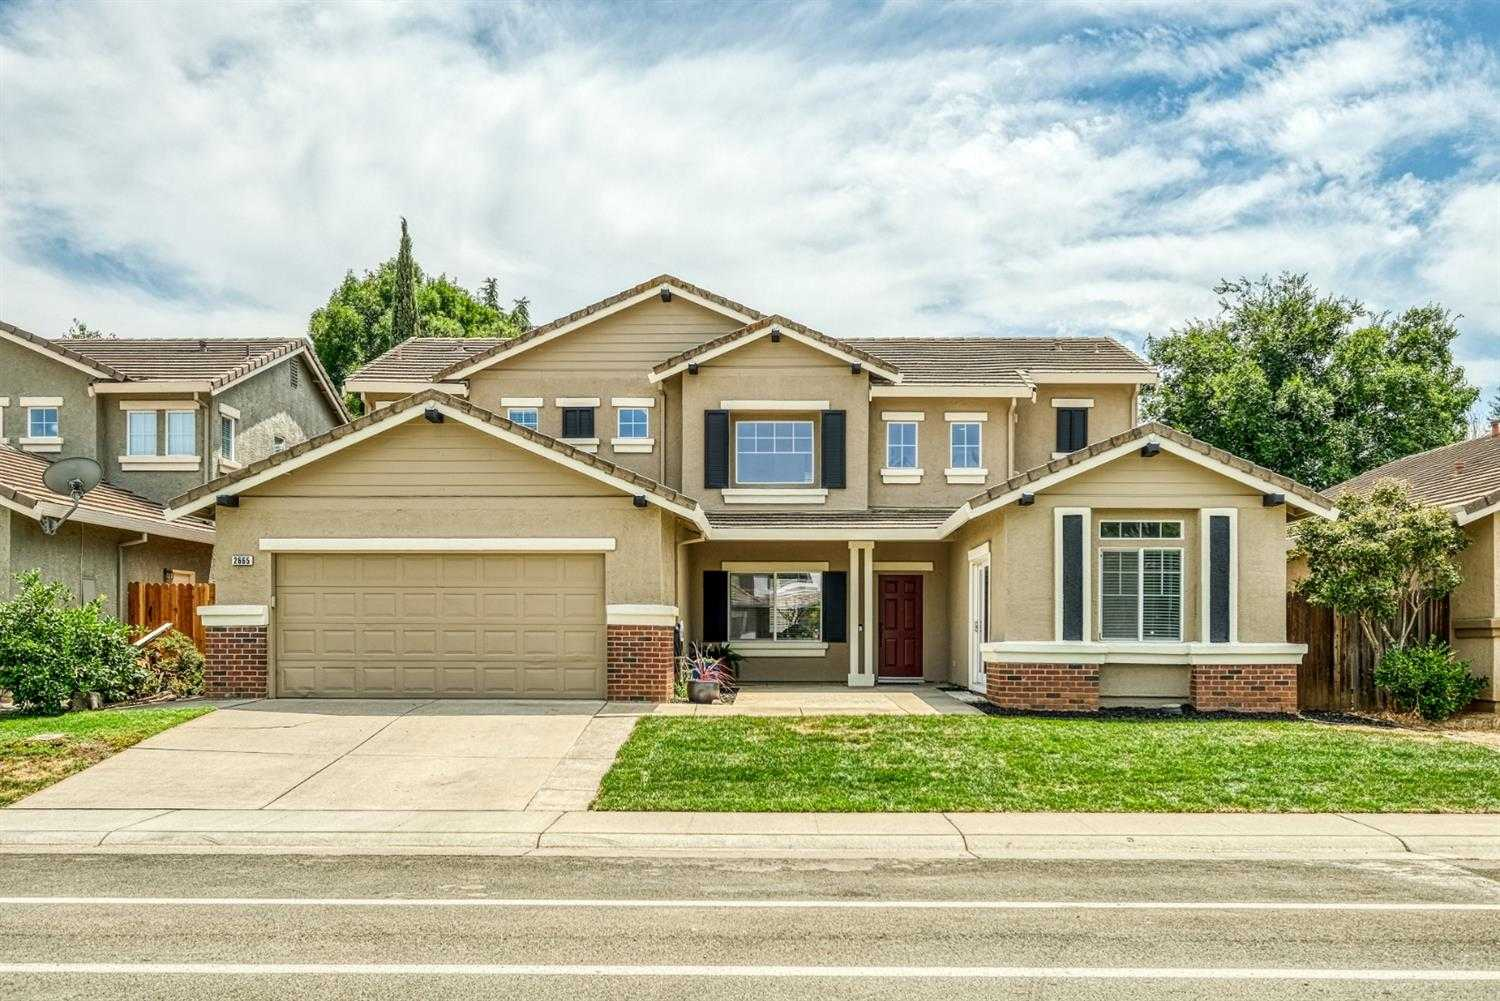 2665 3rd St Lincoln, CA 95648